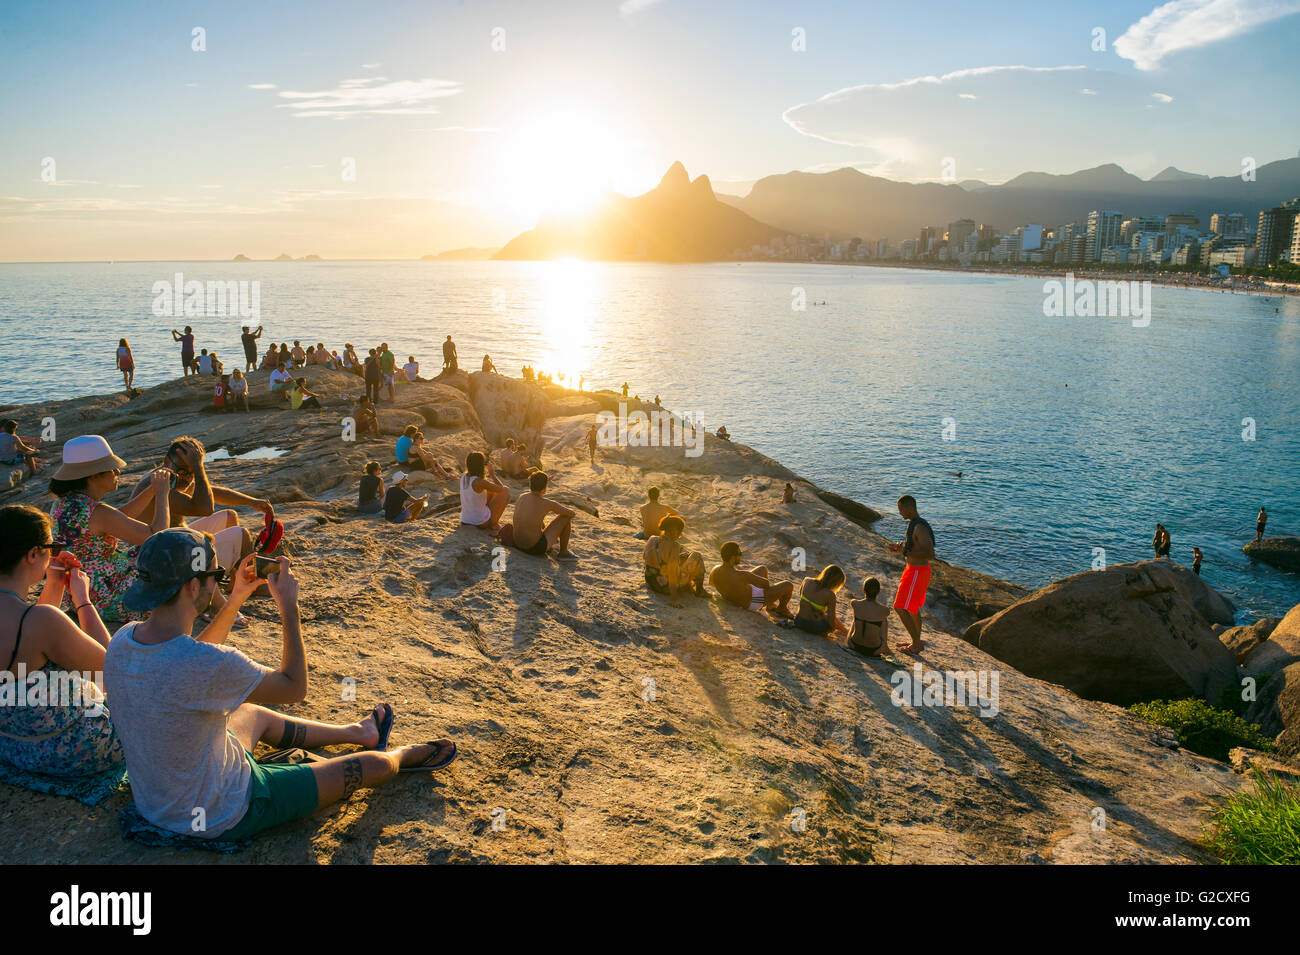 RIO DE JANEIRO - FEBRUARY 26, 2016: Crowds of people gather to watch the sunset on the rocks at Arpoador. - Stock Image